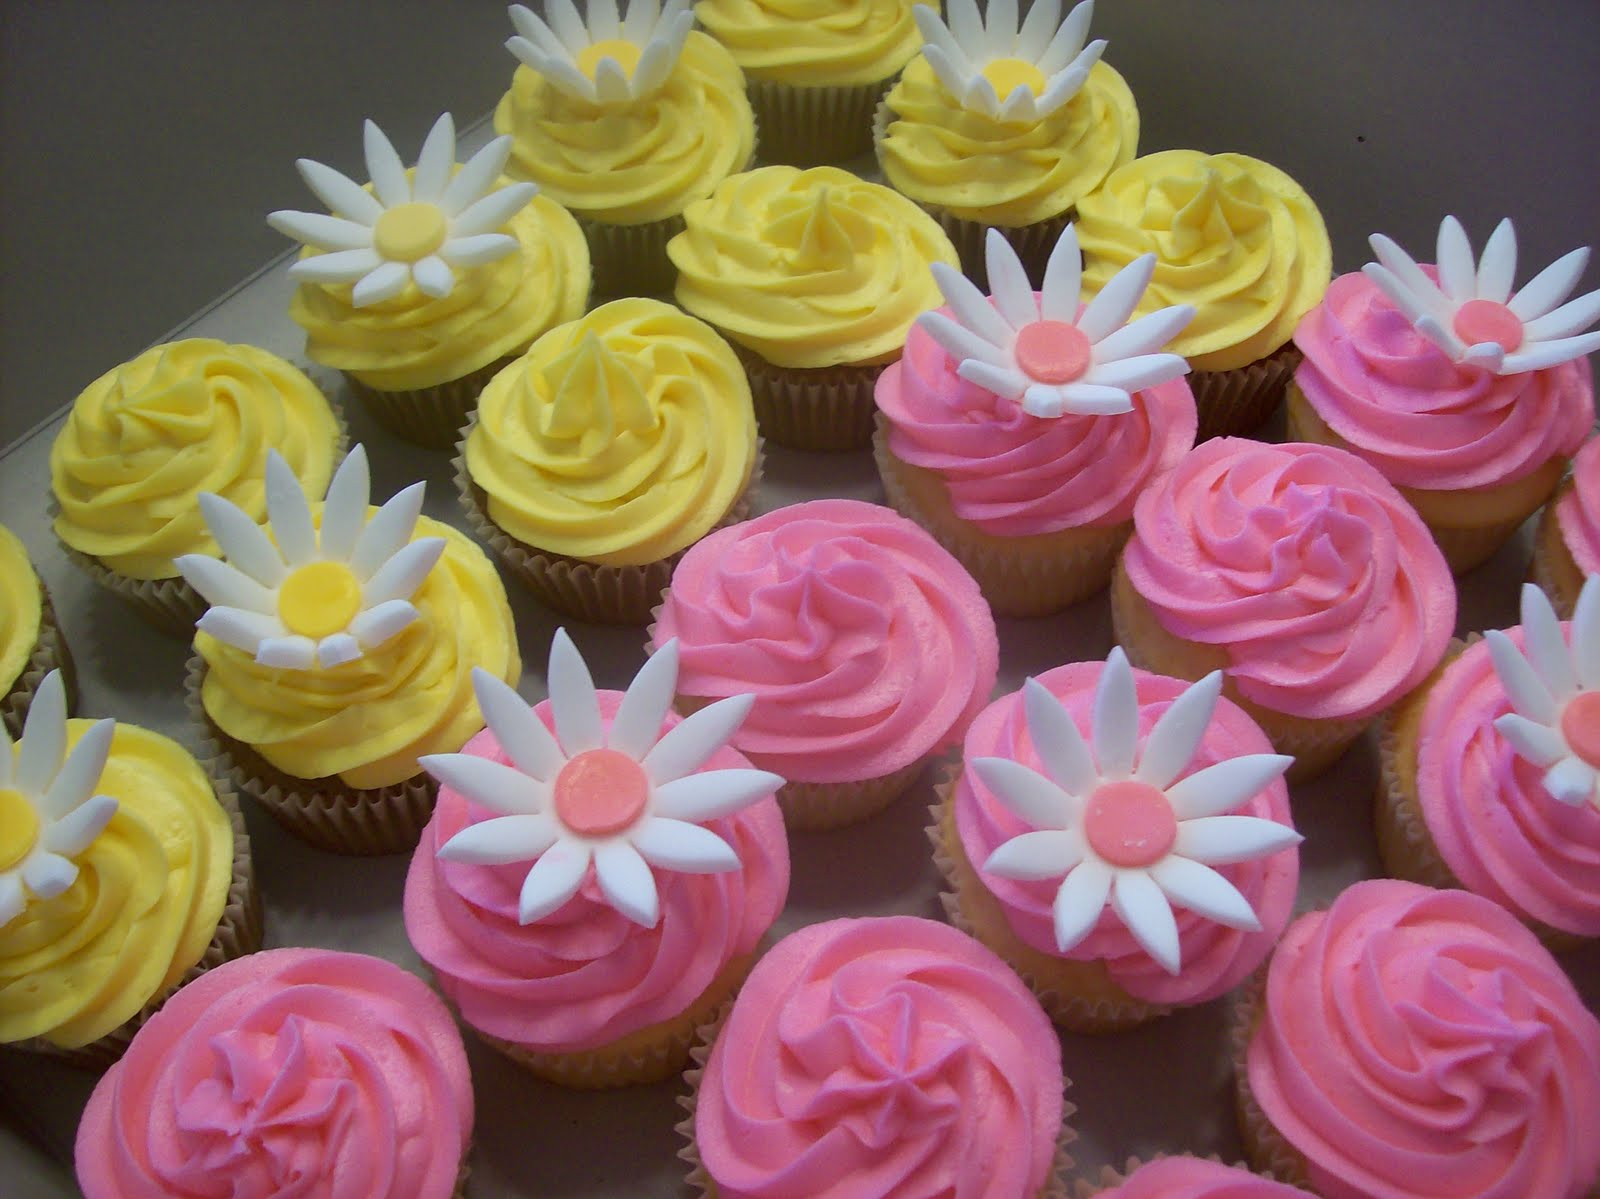 The Sugar Shack Flower Cupcakes